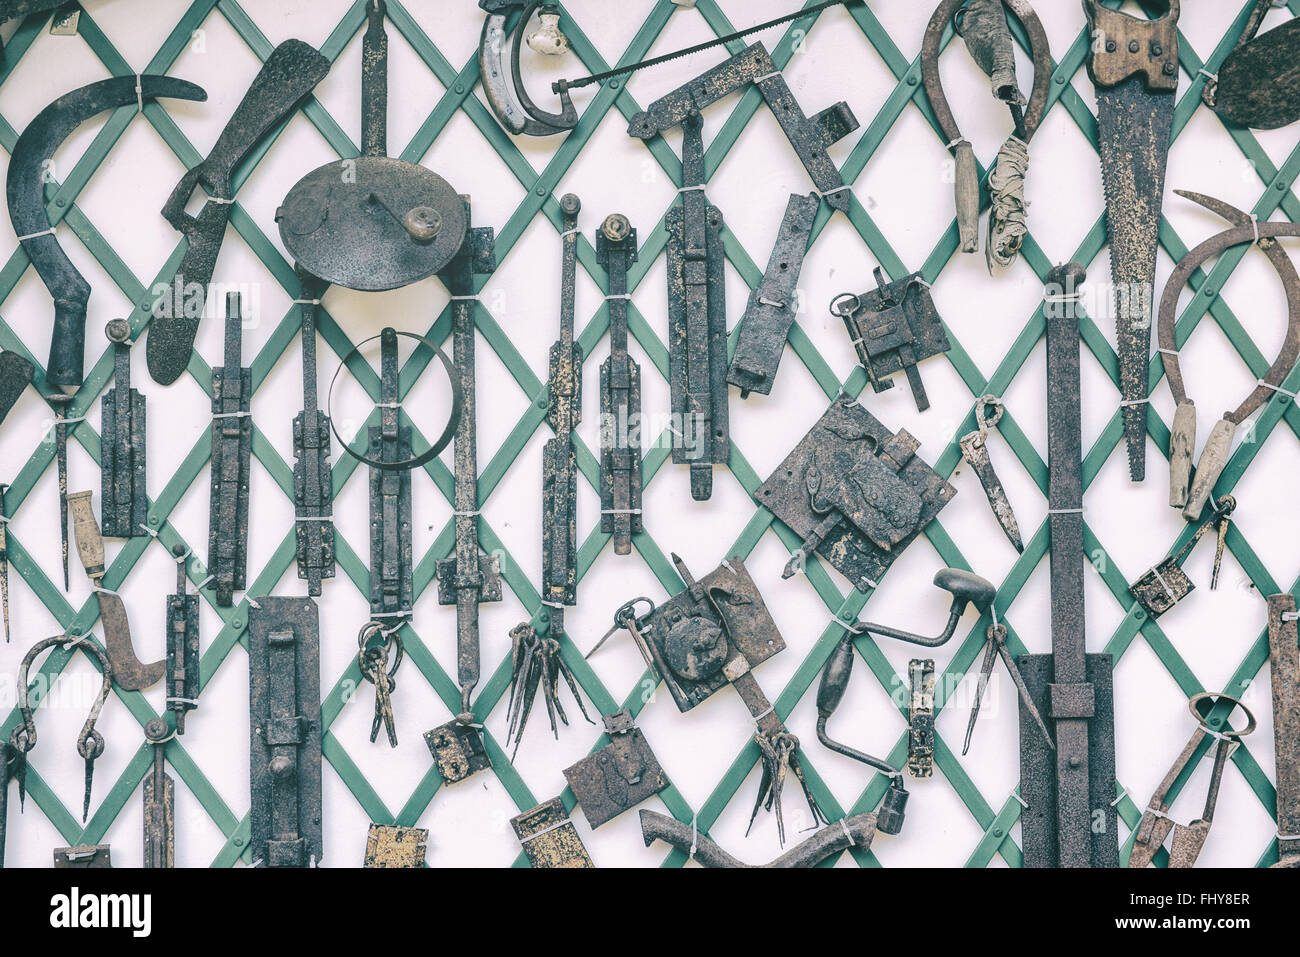 old garden tools, locks, chains, fasteners, saws - Stock Image